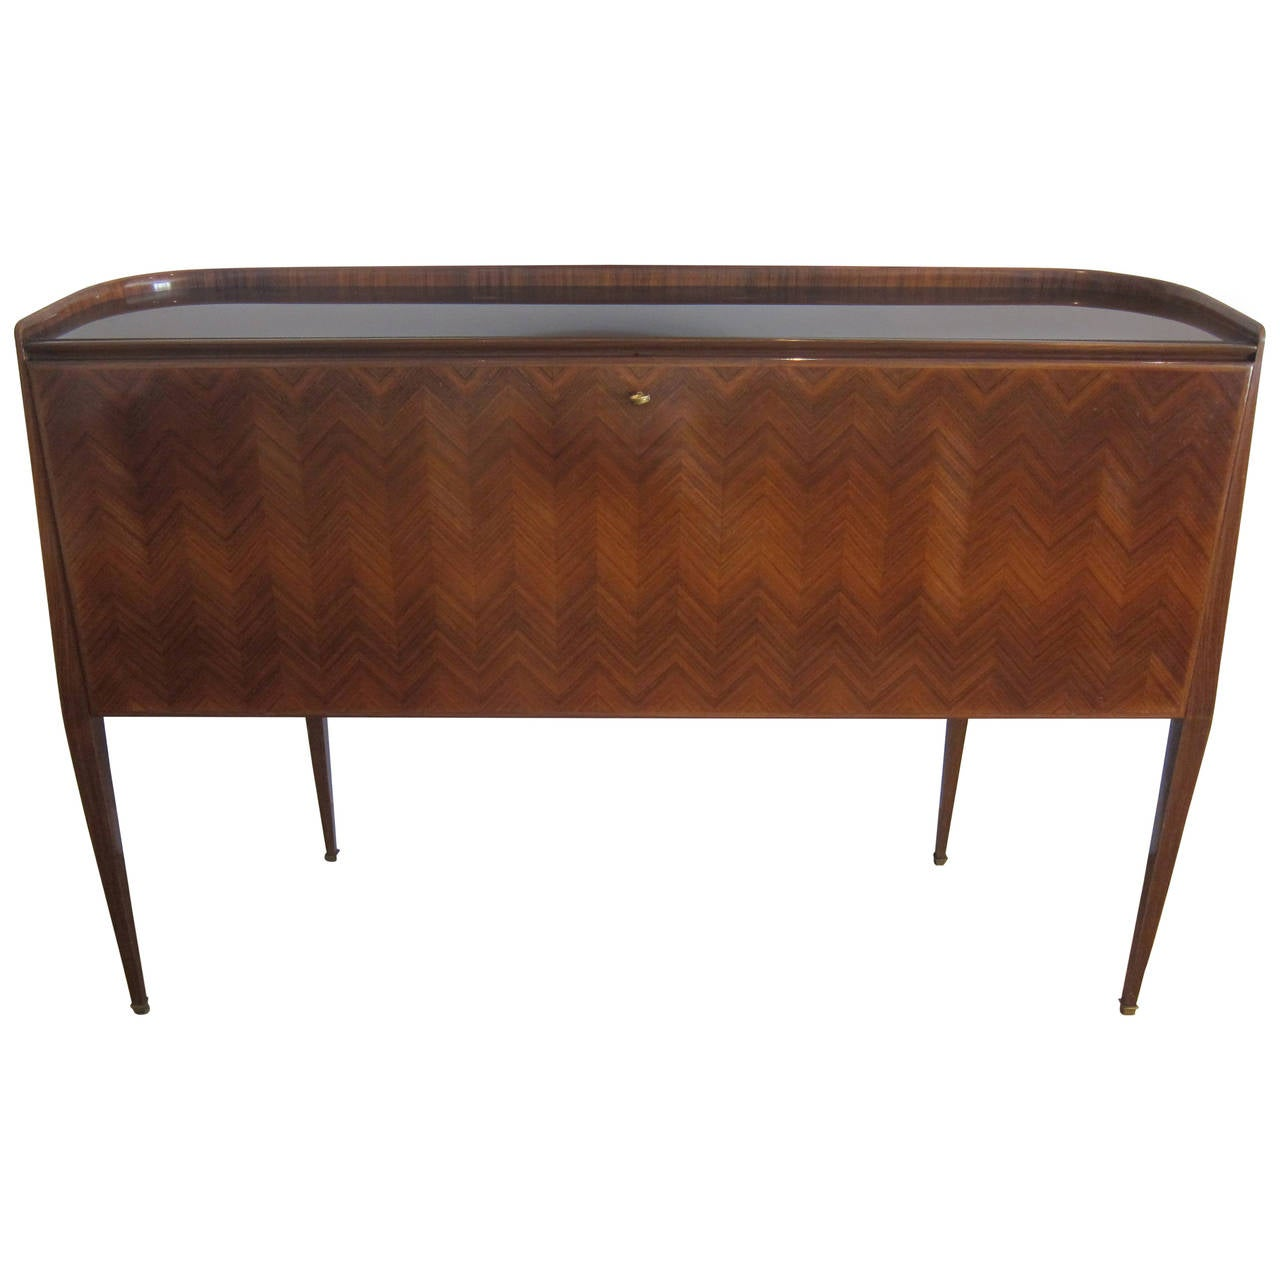 Dry bar cabinet by paolo buffa italy 1950 39 s for sale at for Home dry bar furniture